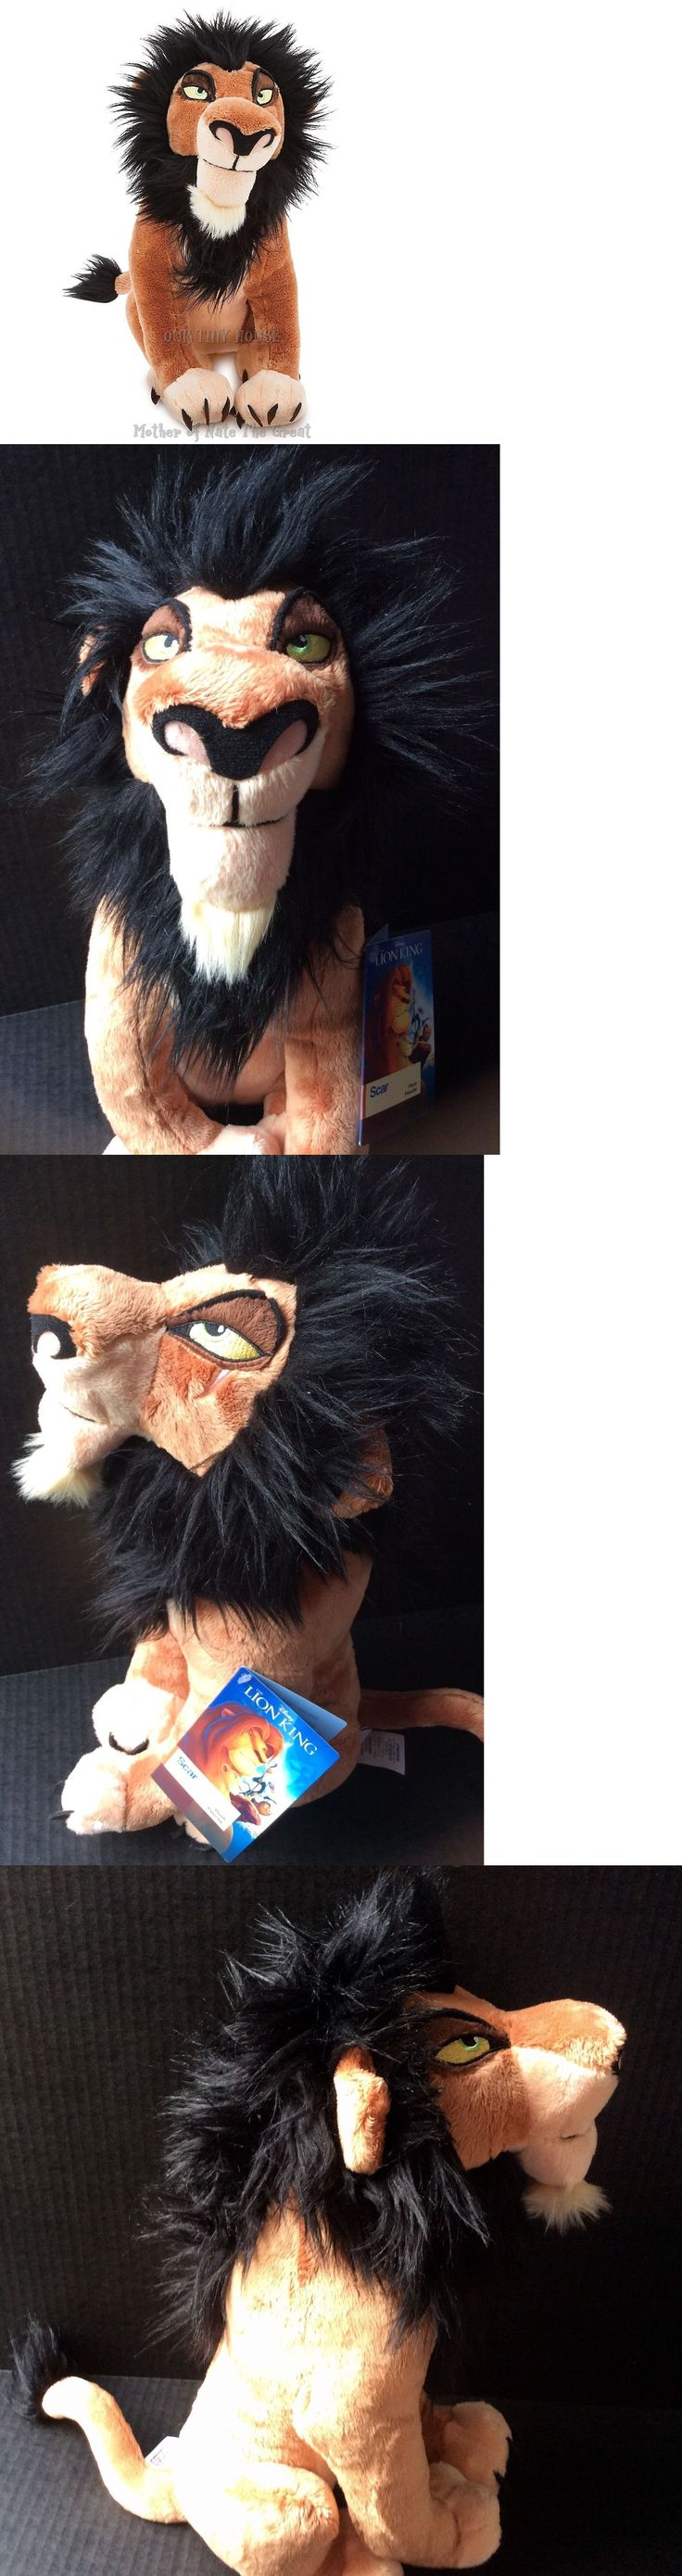 Lion King 44037: 2017 Disney Store The Lion King Scar Soft Plush Disney Villain Toy New With Tags -> BUY IT NOW ONLY: $49.95 on eBay!